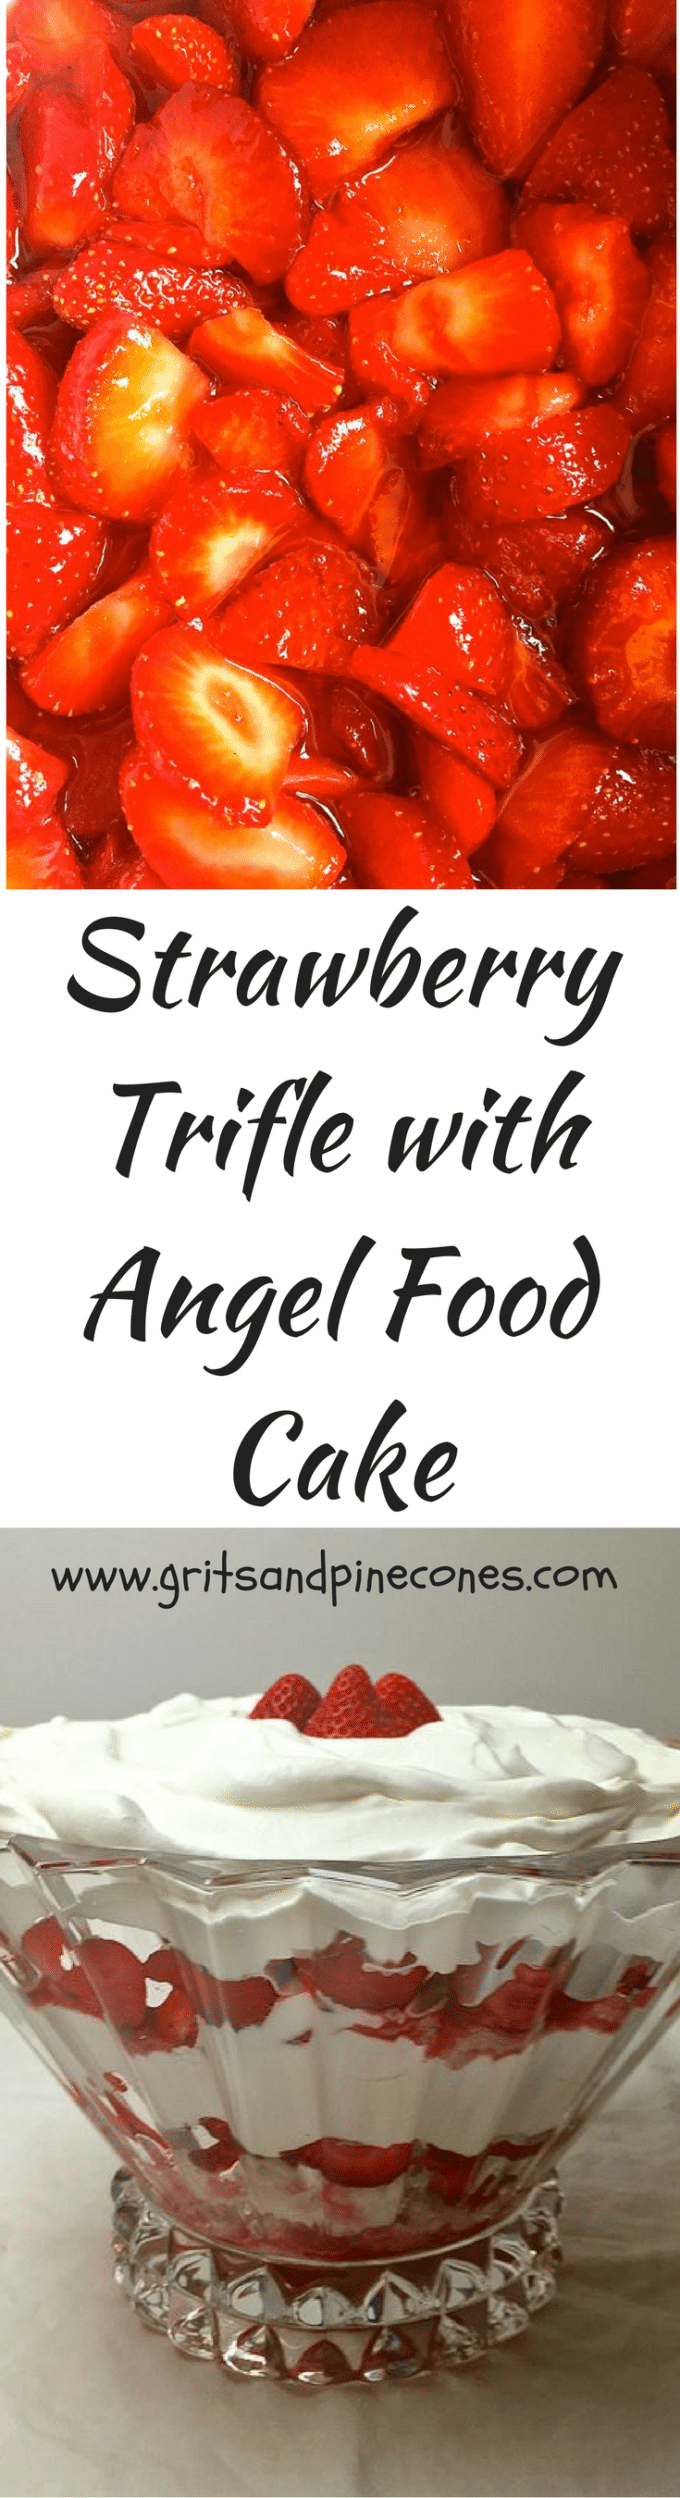 No-bake Strawberry Trifle with Angel Food Cake with fresh juicy strawberries, creamy whipped cream, and heavenly angel food cake is an easy, elegant and delicious dessert for your Easter dinner or brunch!